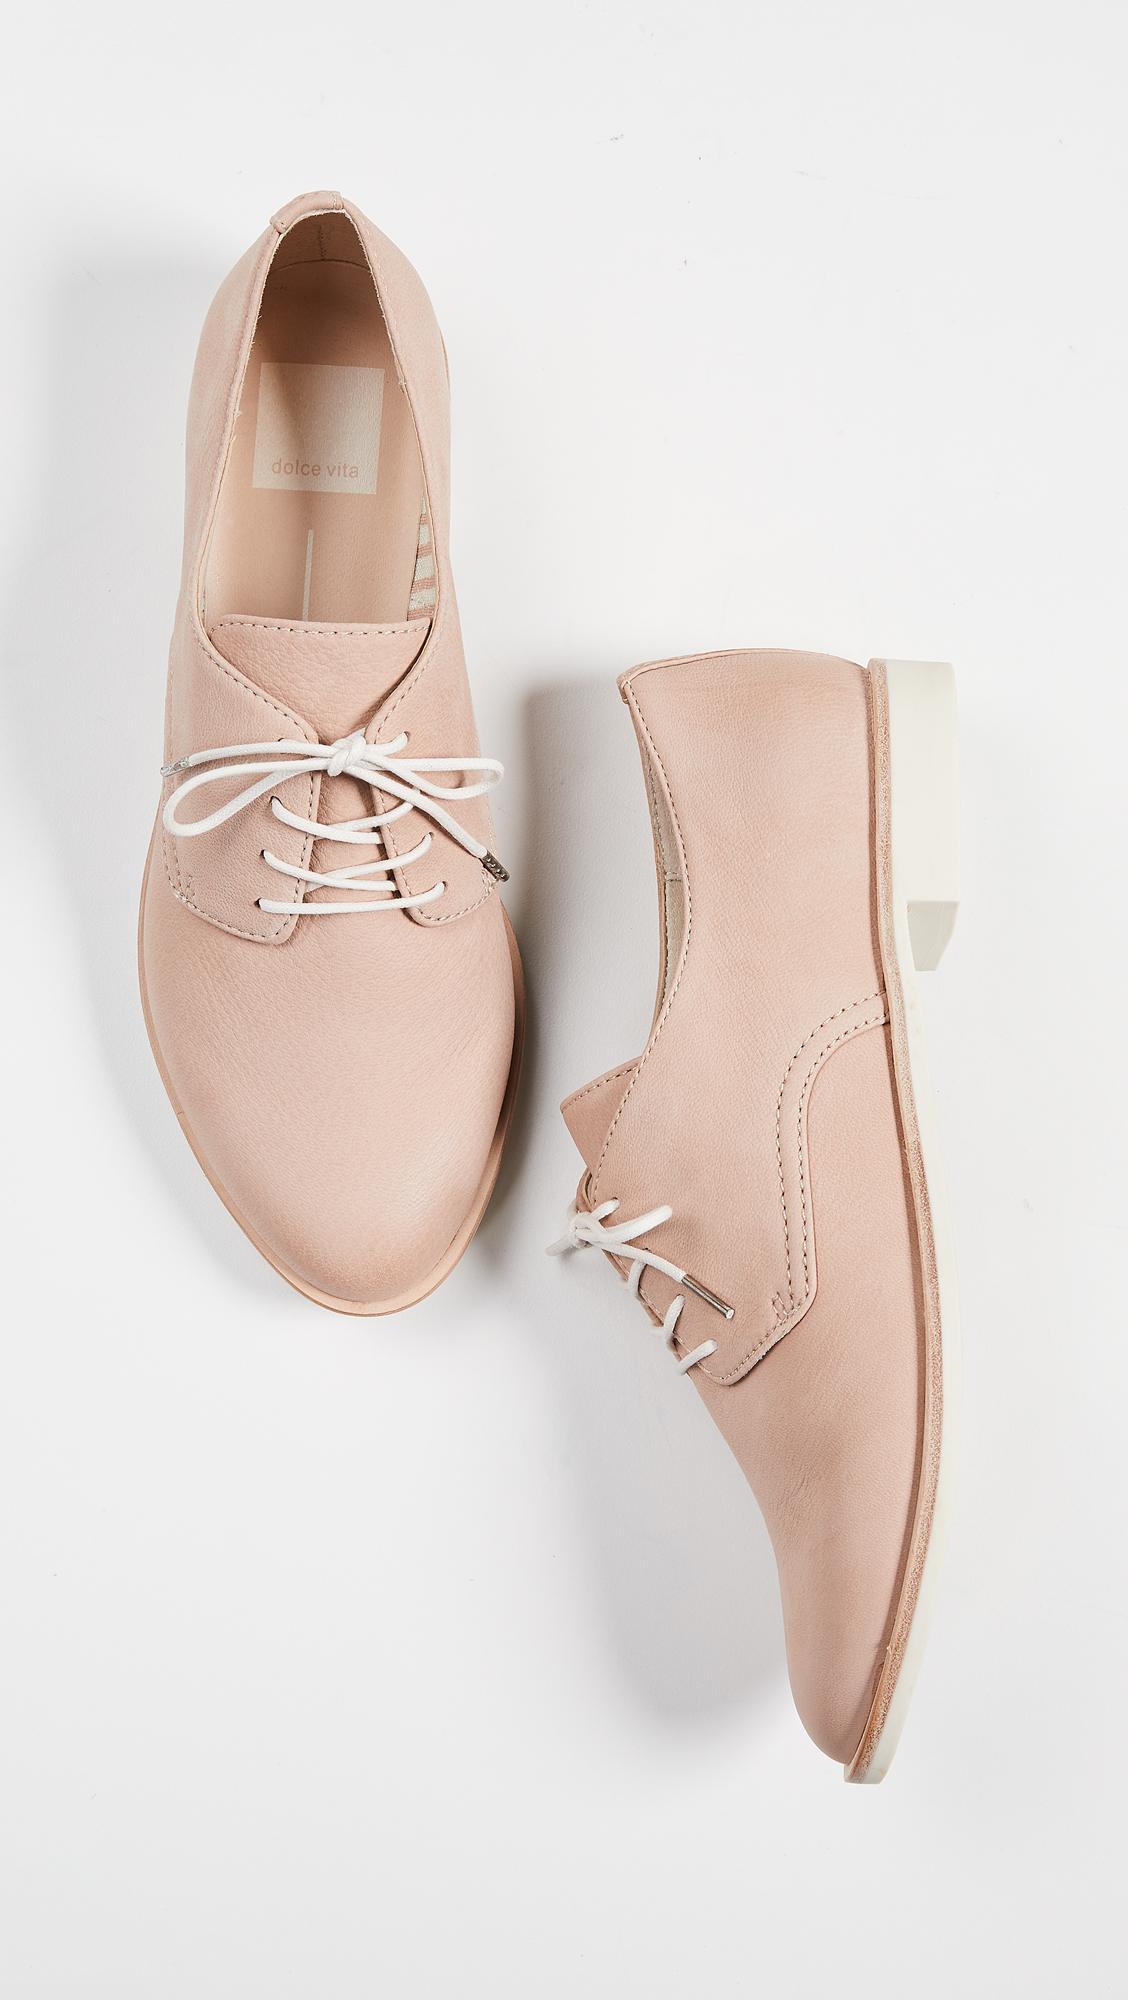 a75fddcb0155 Dolce Vita Kylie Lace Up Oxfords